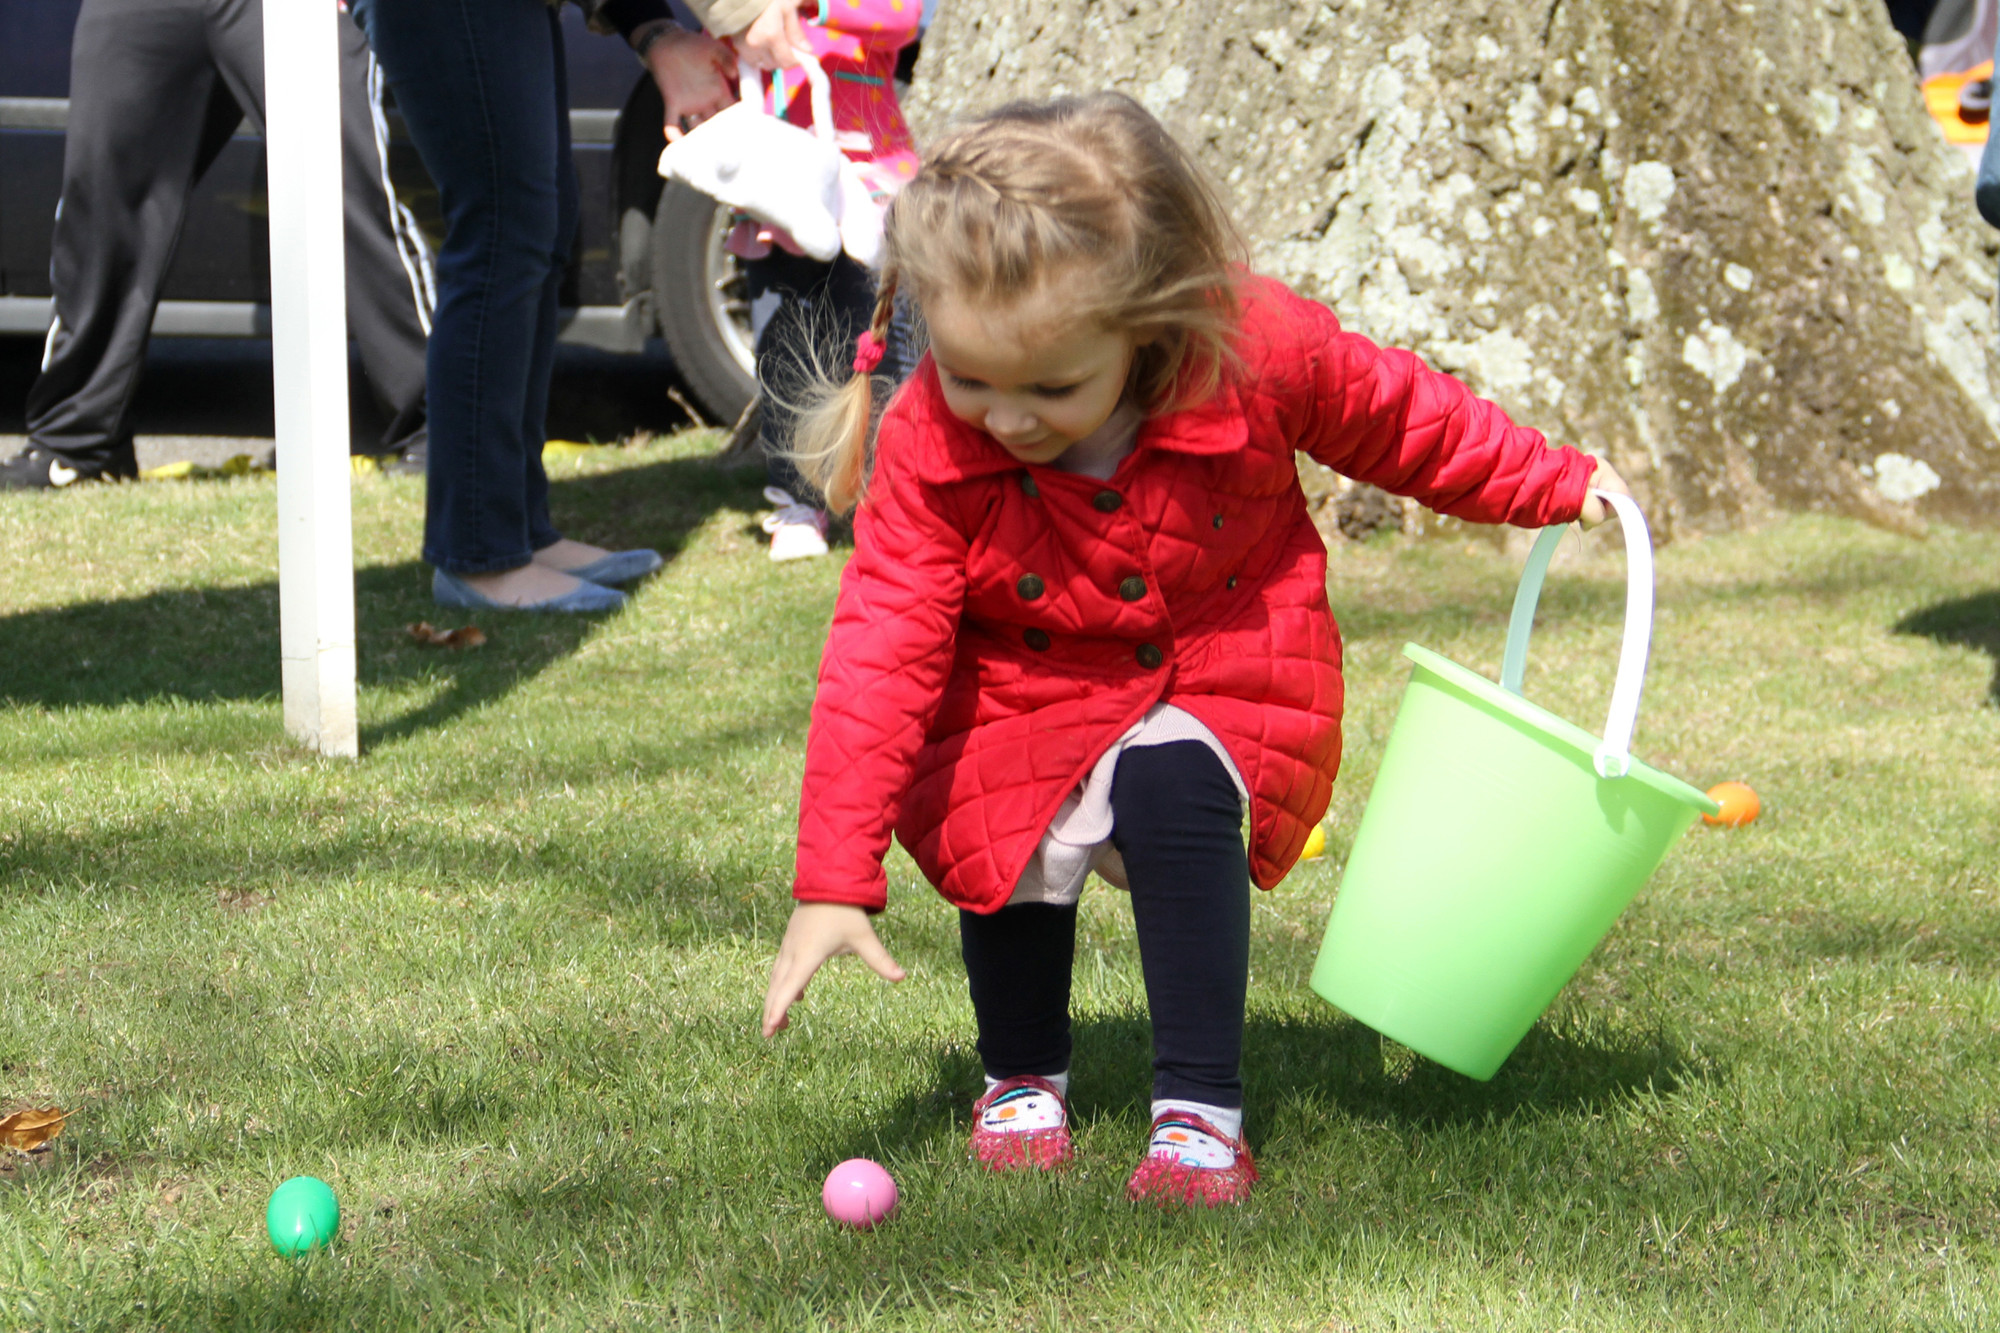 Three-year-old Ella Connor nabbed one of many colorful finds at the Malverne Merchants and Professional Association�s Easter Egg Hunt at Gazebo Park on April 19.